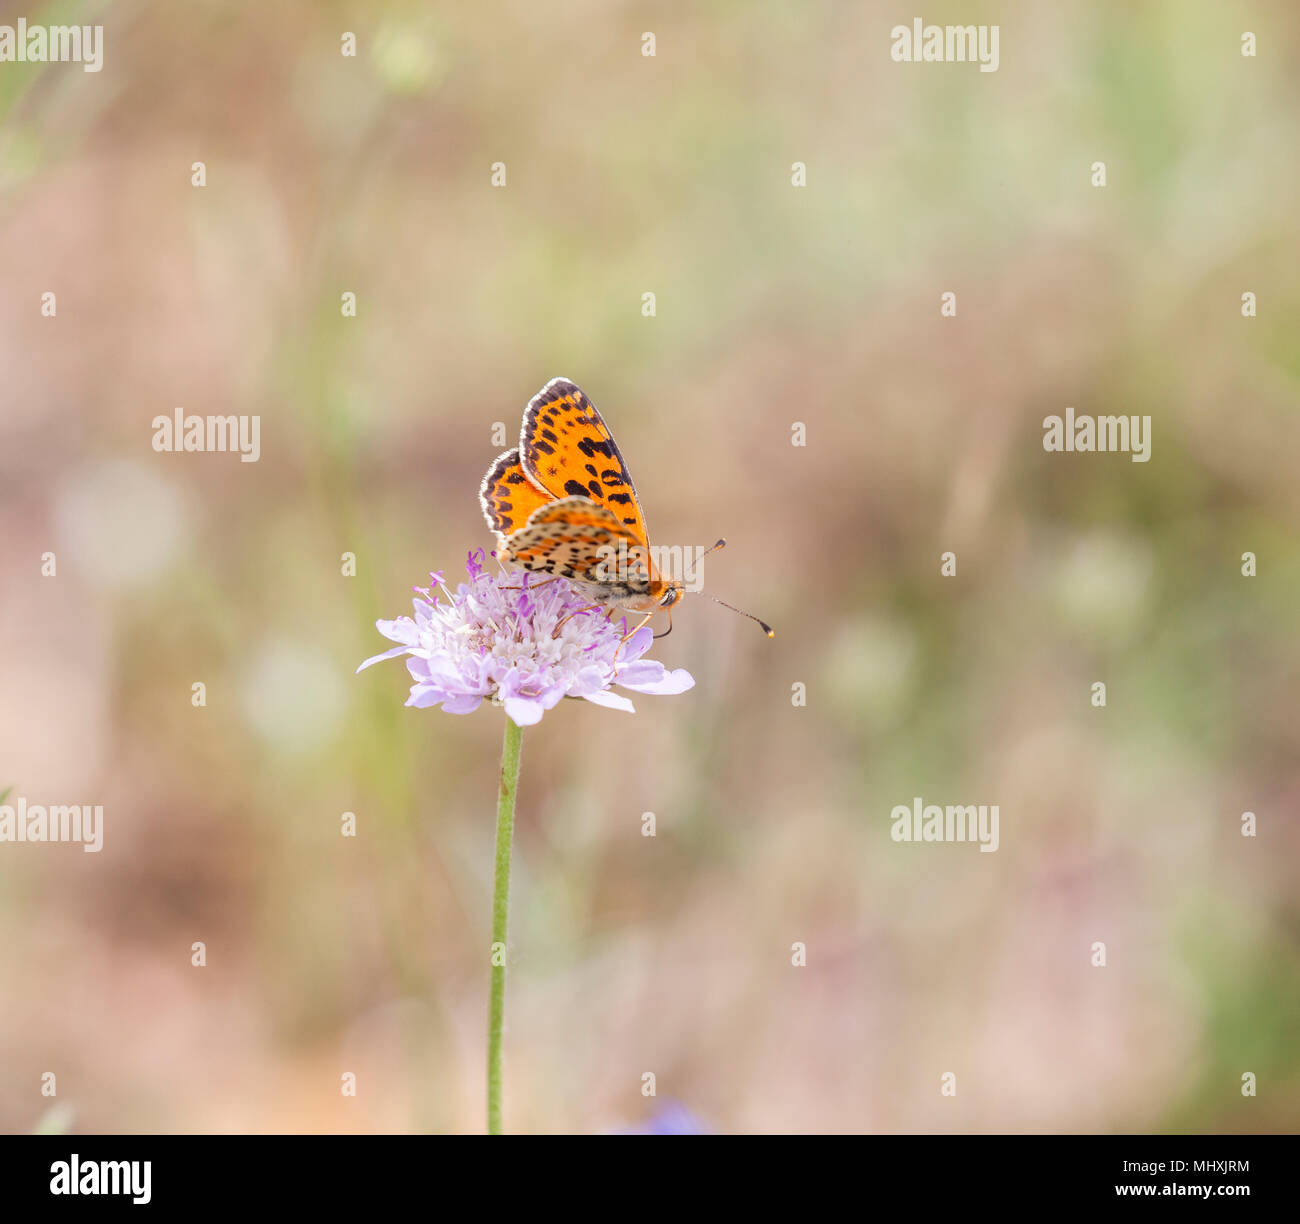 Spotted Fritillary butterfly Melitaea didyma on a flower head in the Picos de Europa Northern Spain Stock Photo